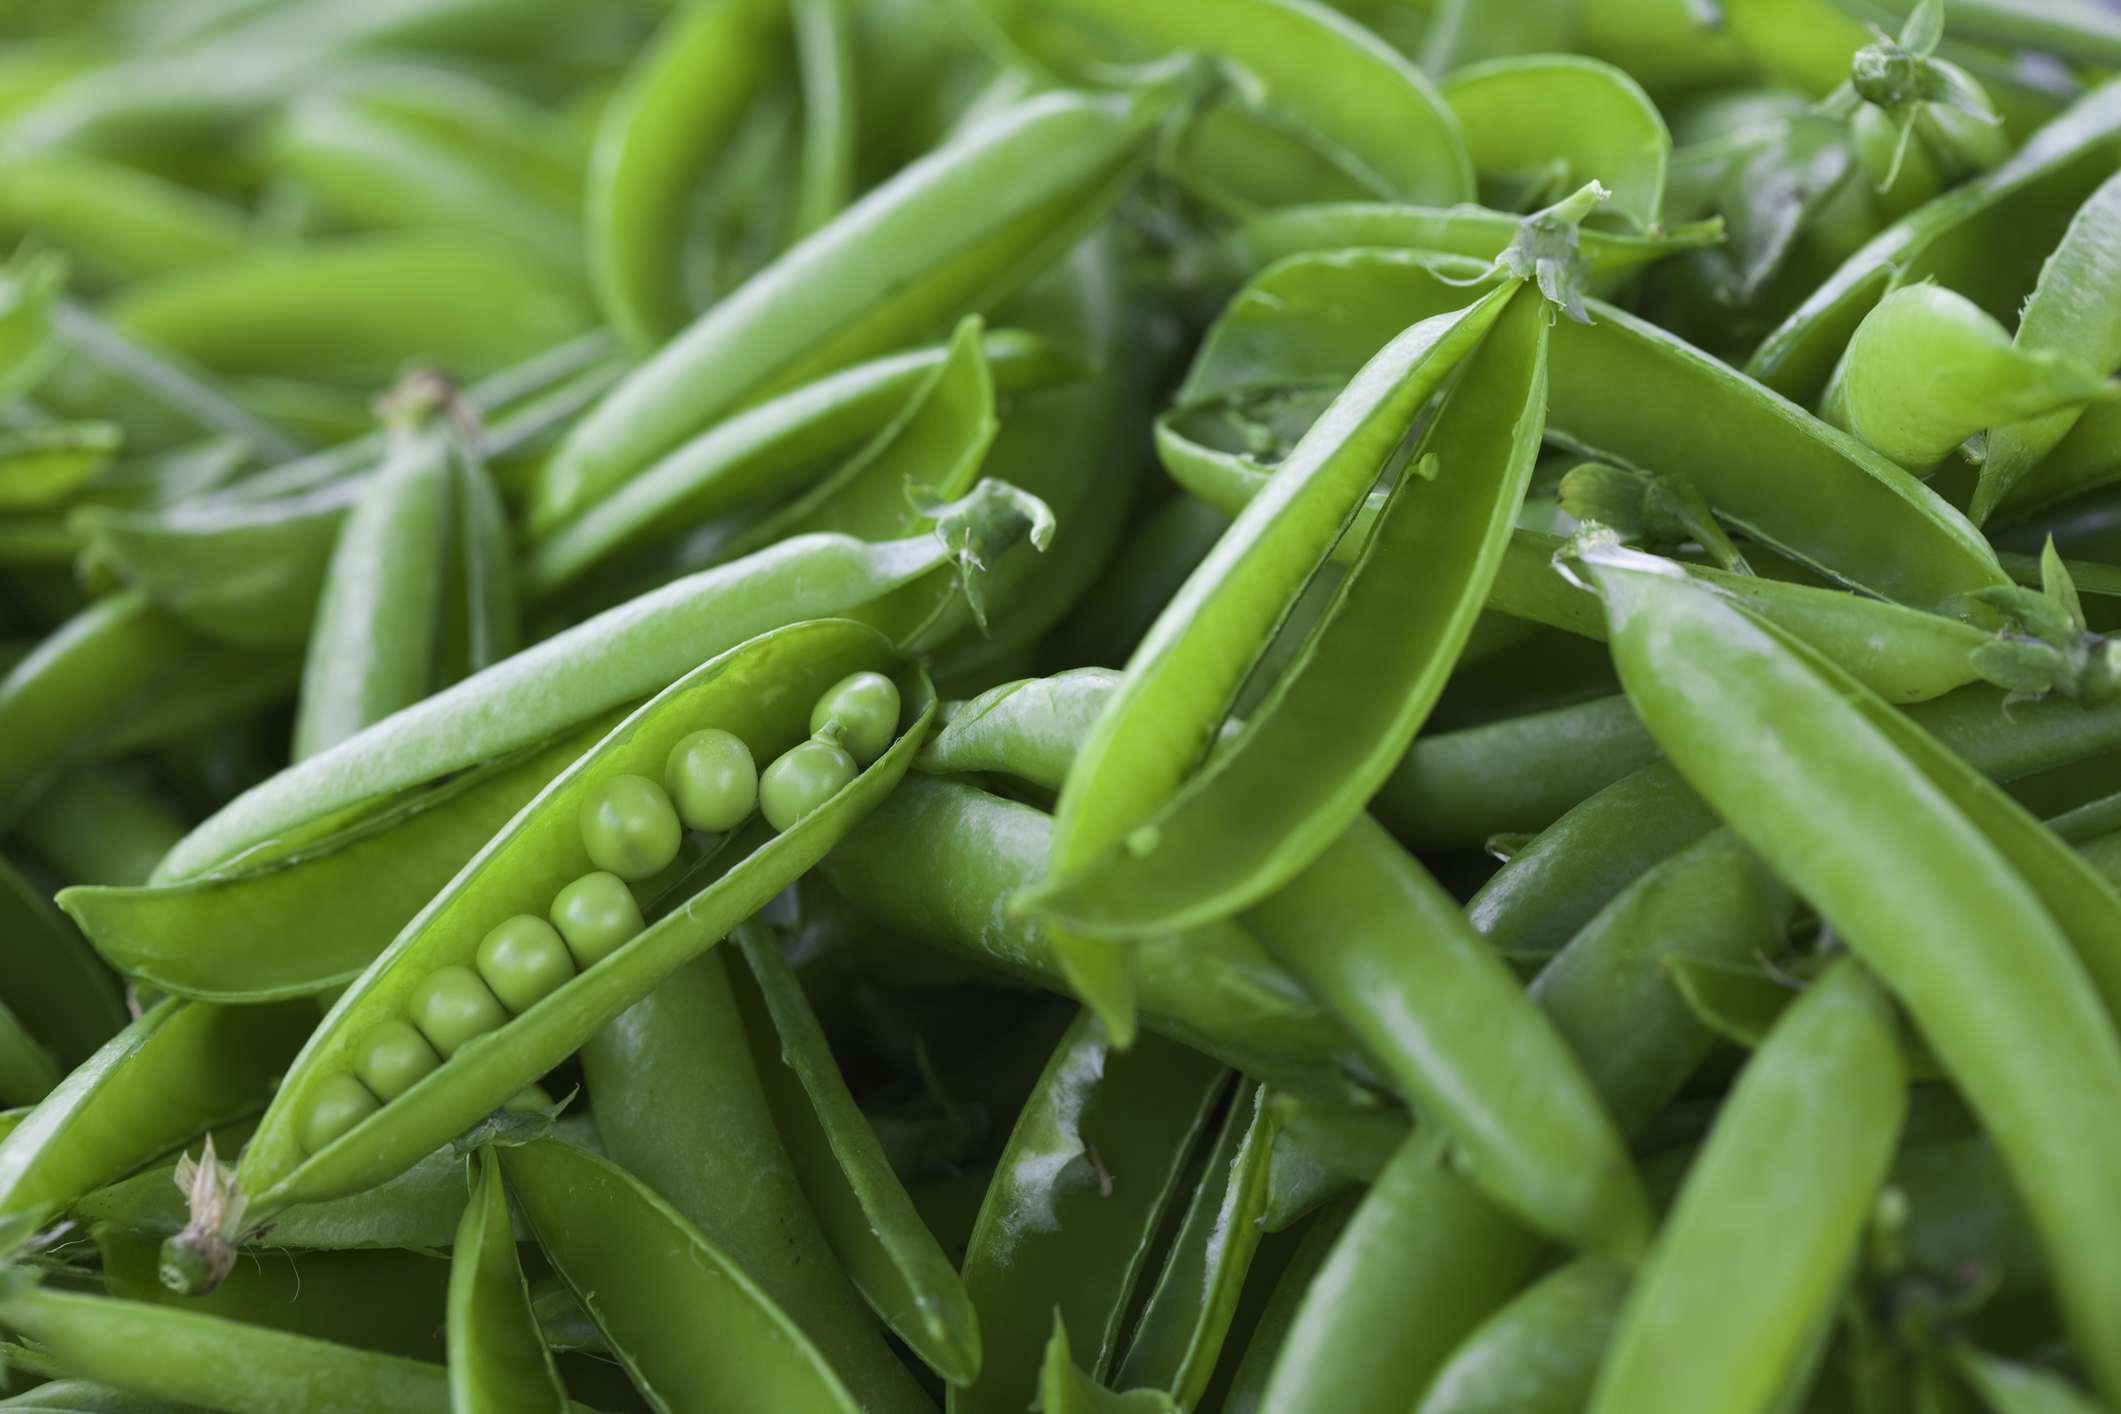 English Shelling Peas